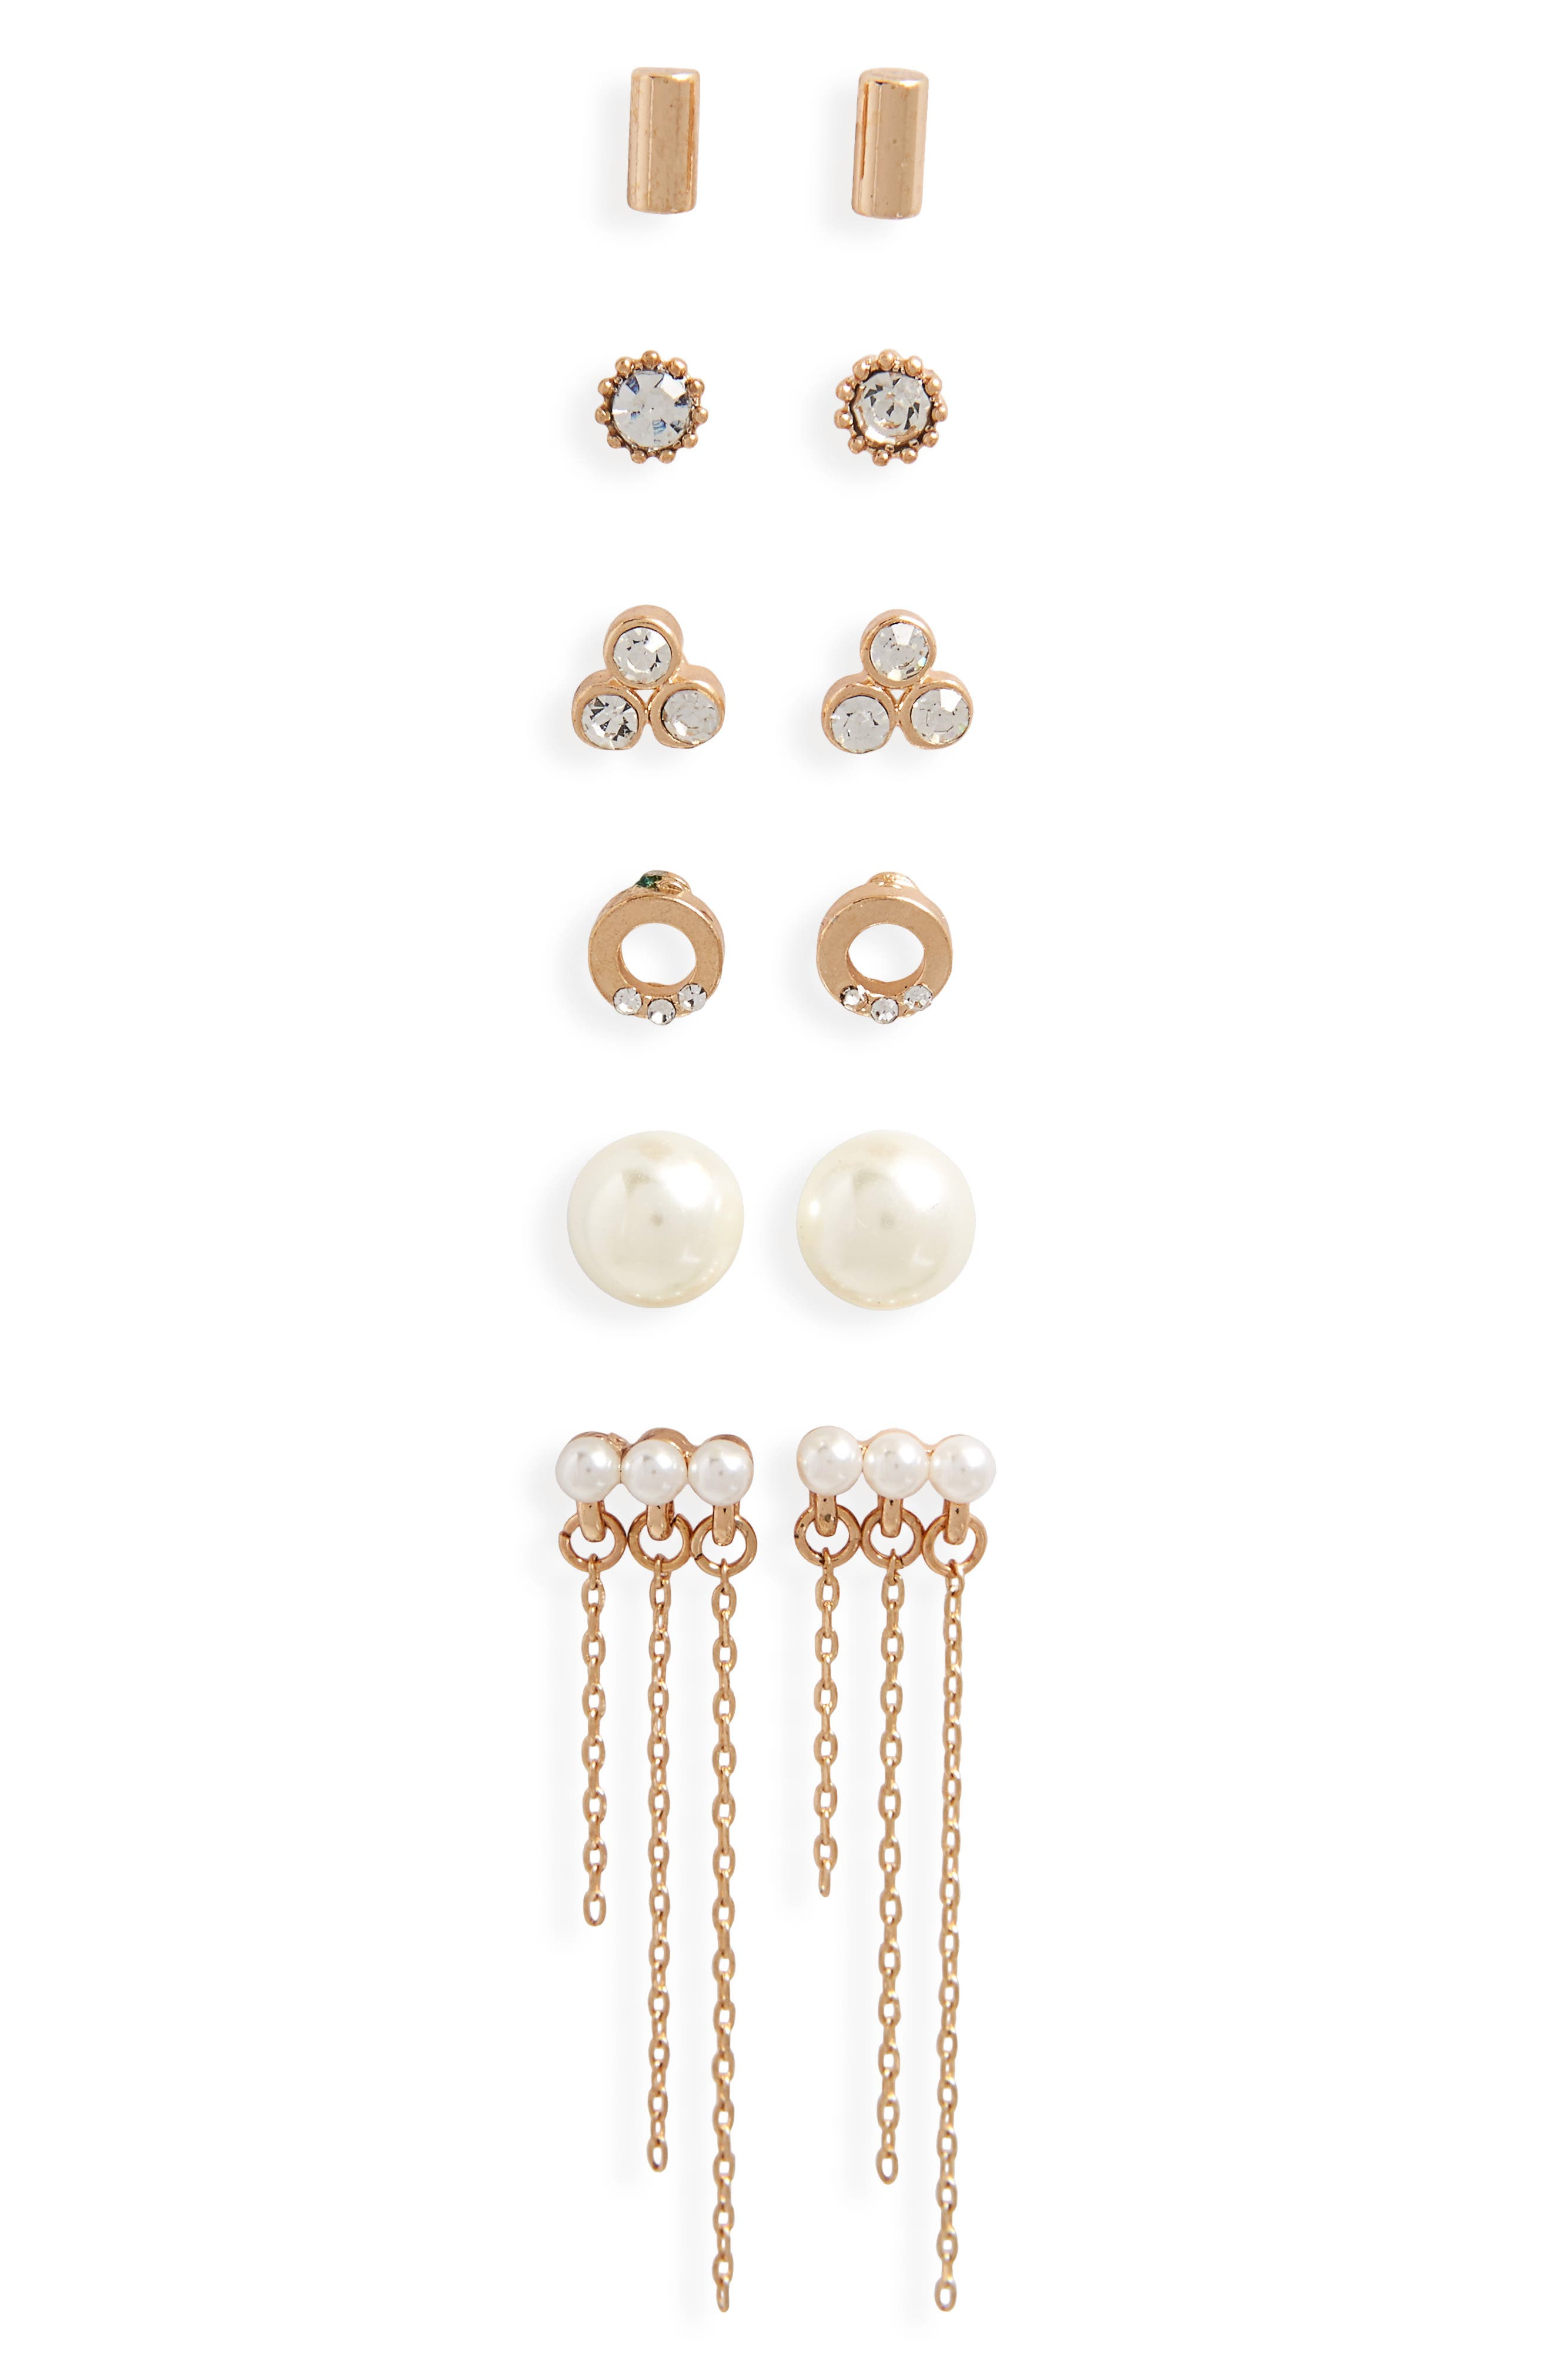 6-Pack Imitation Pearl & Crystal Earrings,                             Main thumbnail 1, color,                             710